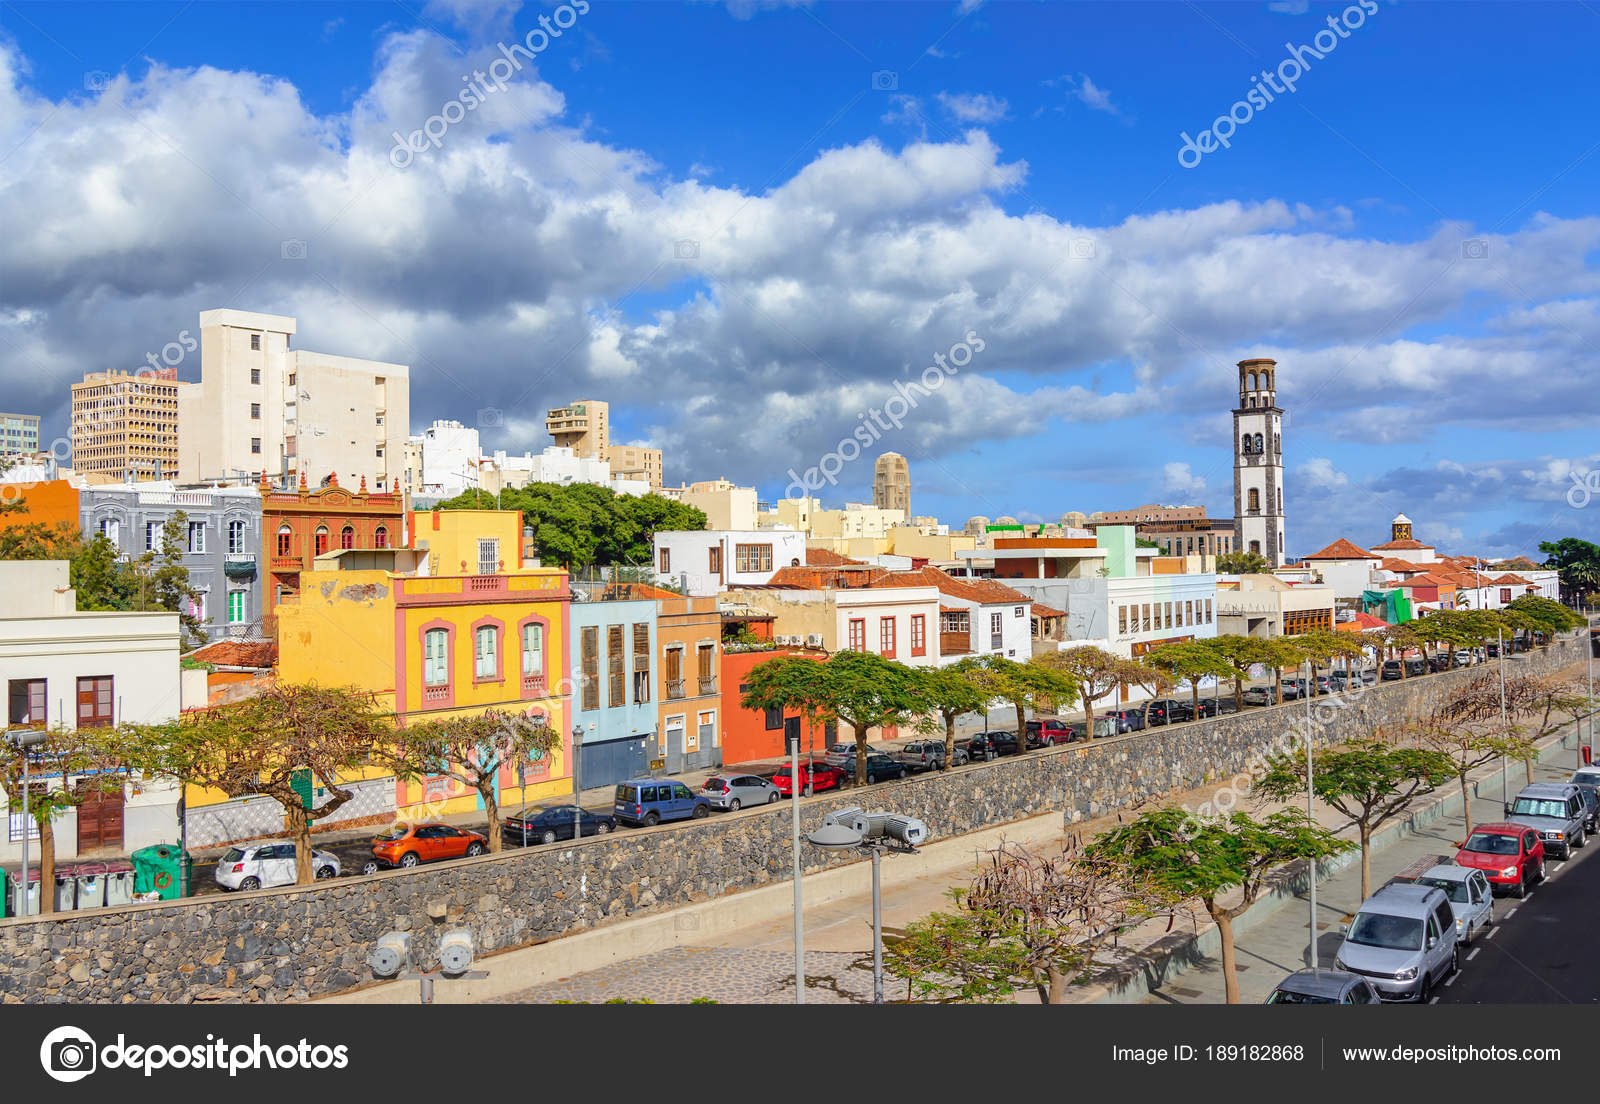 Santa Cruz Colored Houses With De Tenerife Canary Islands Spain Cityscape C